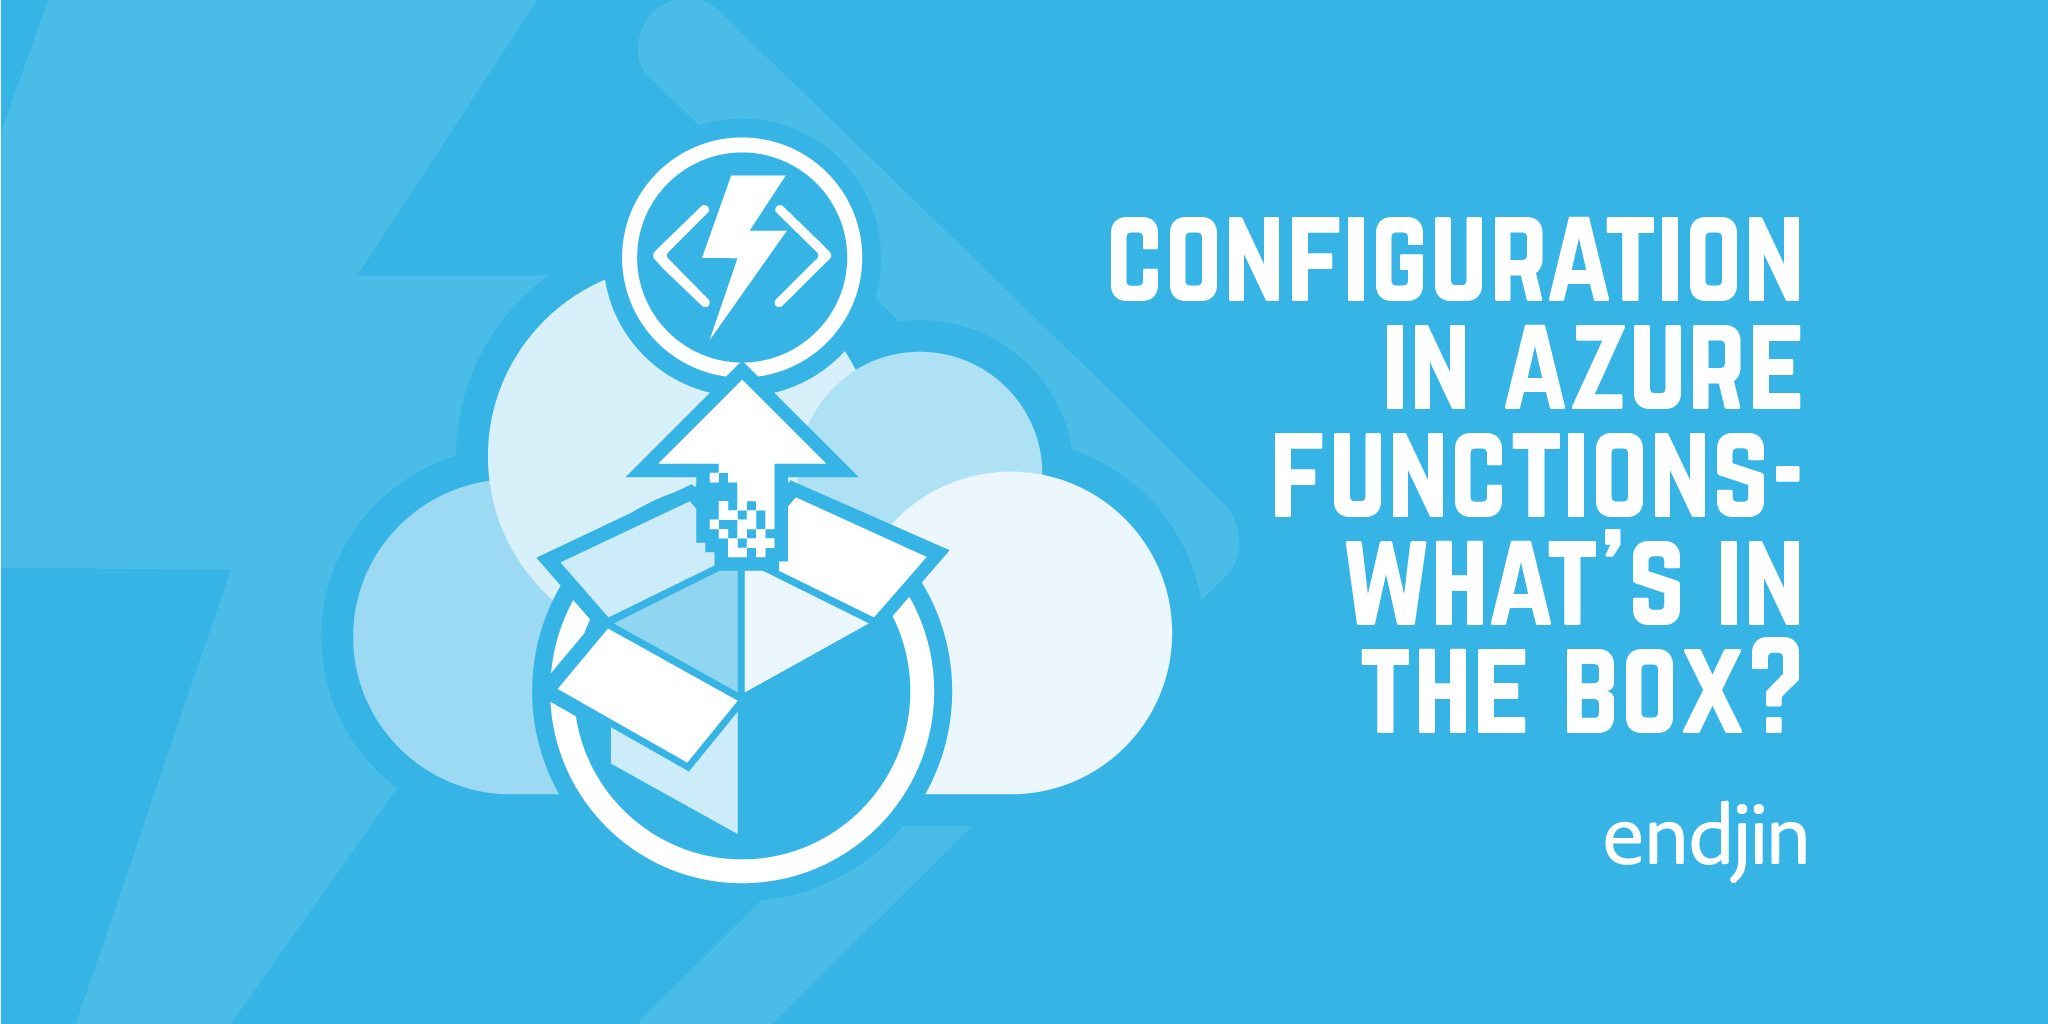 Configuration in Azure Functions - What's in the box?